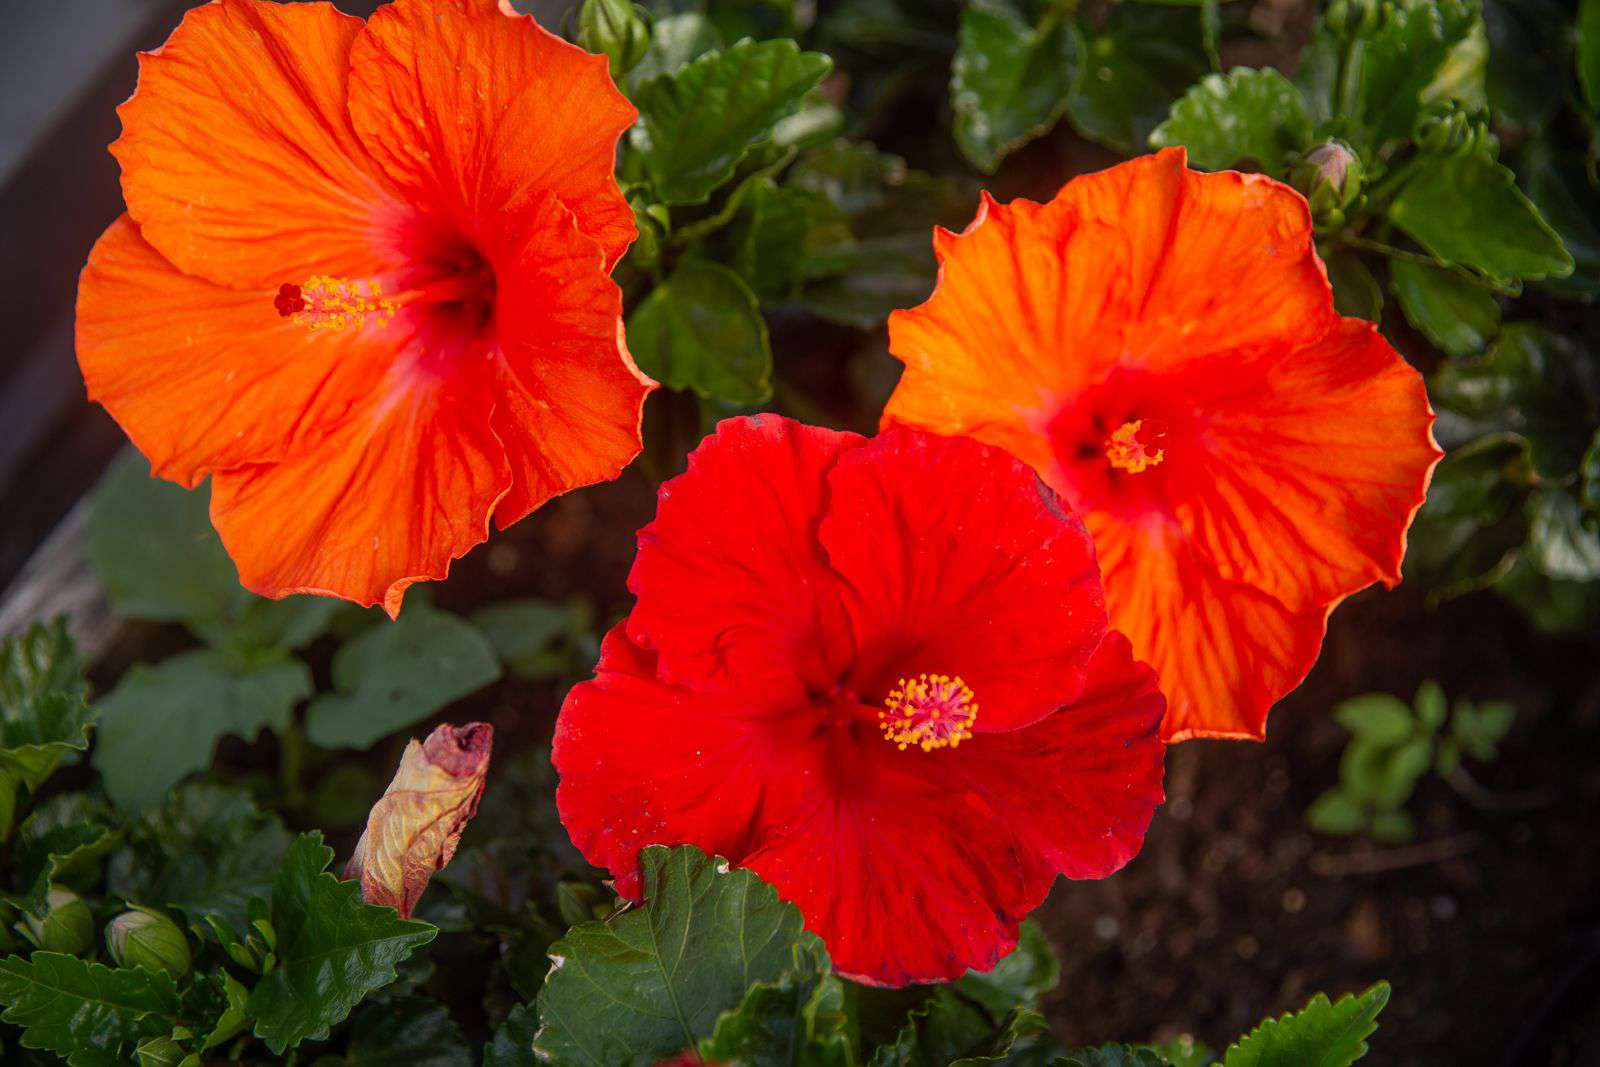 Hibiscus flowers with large bright orange and red petals in garden closeup